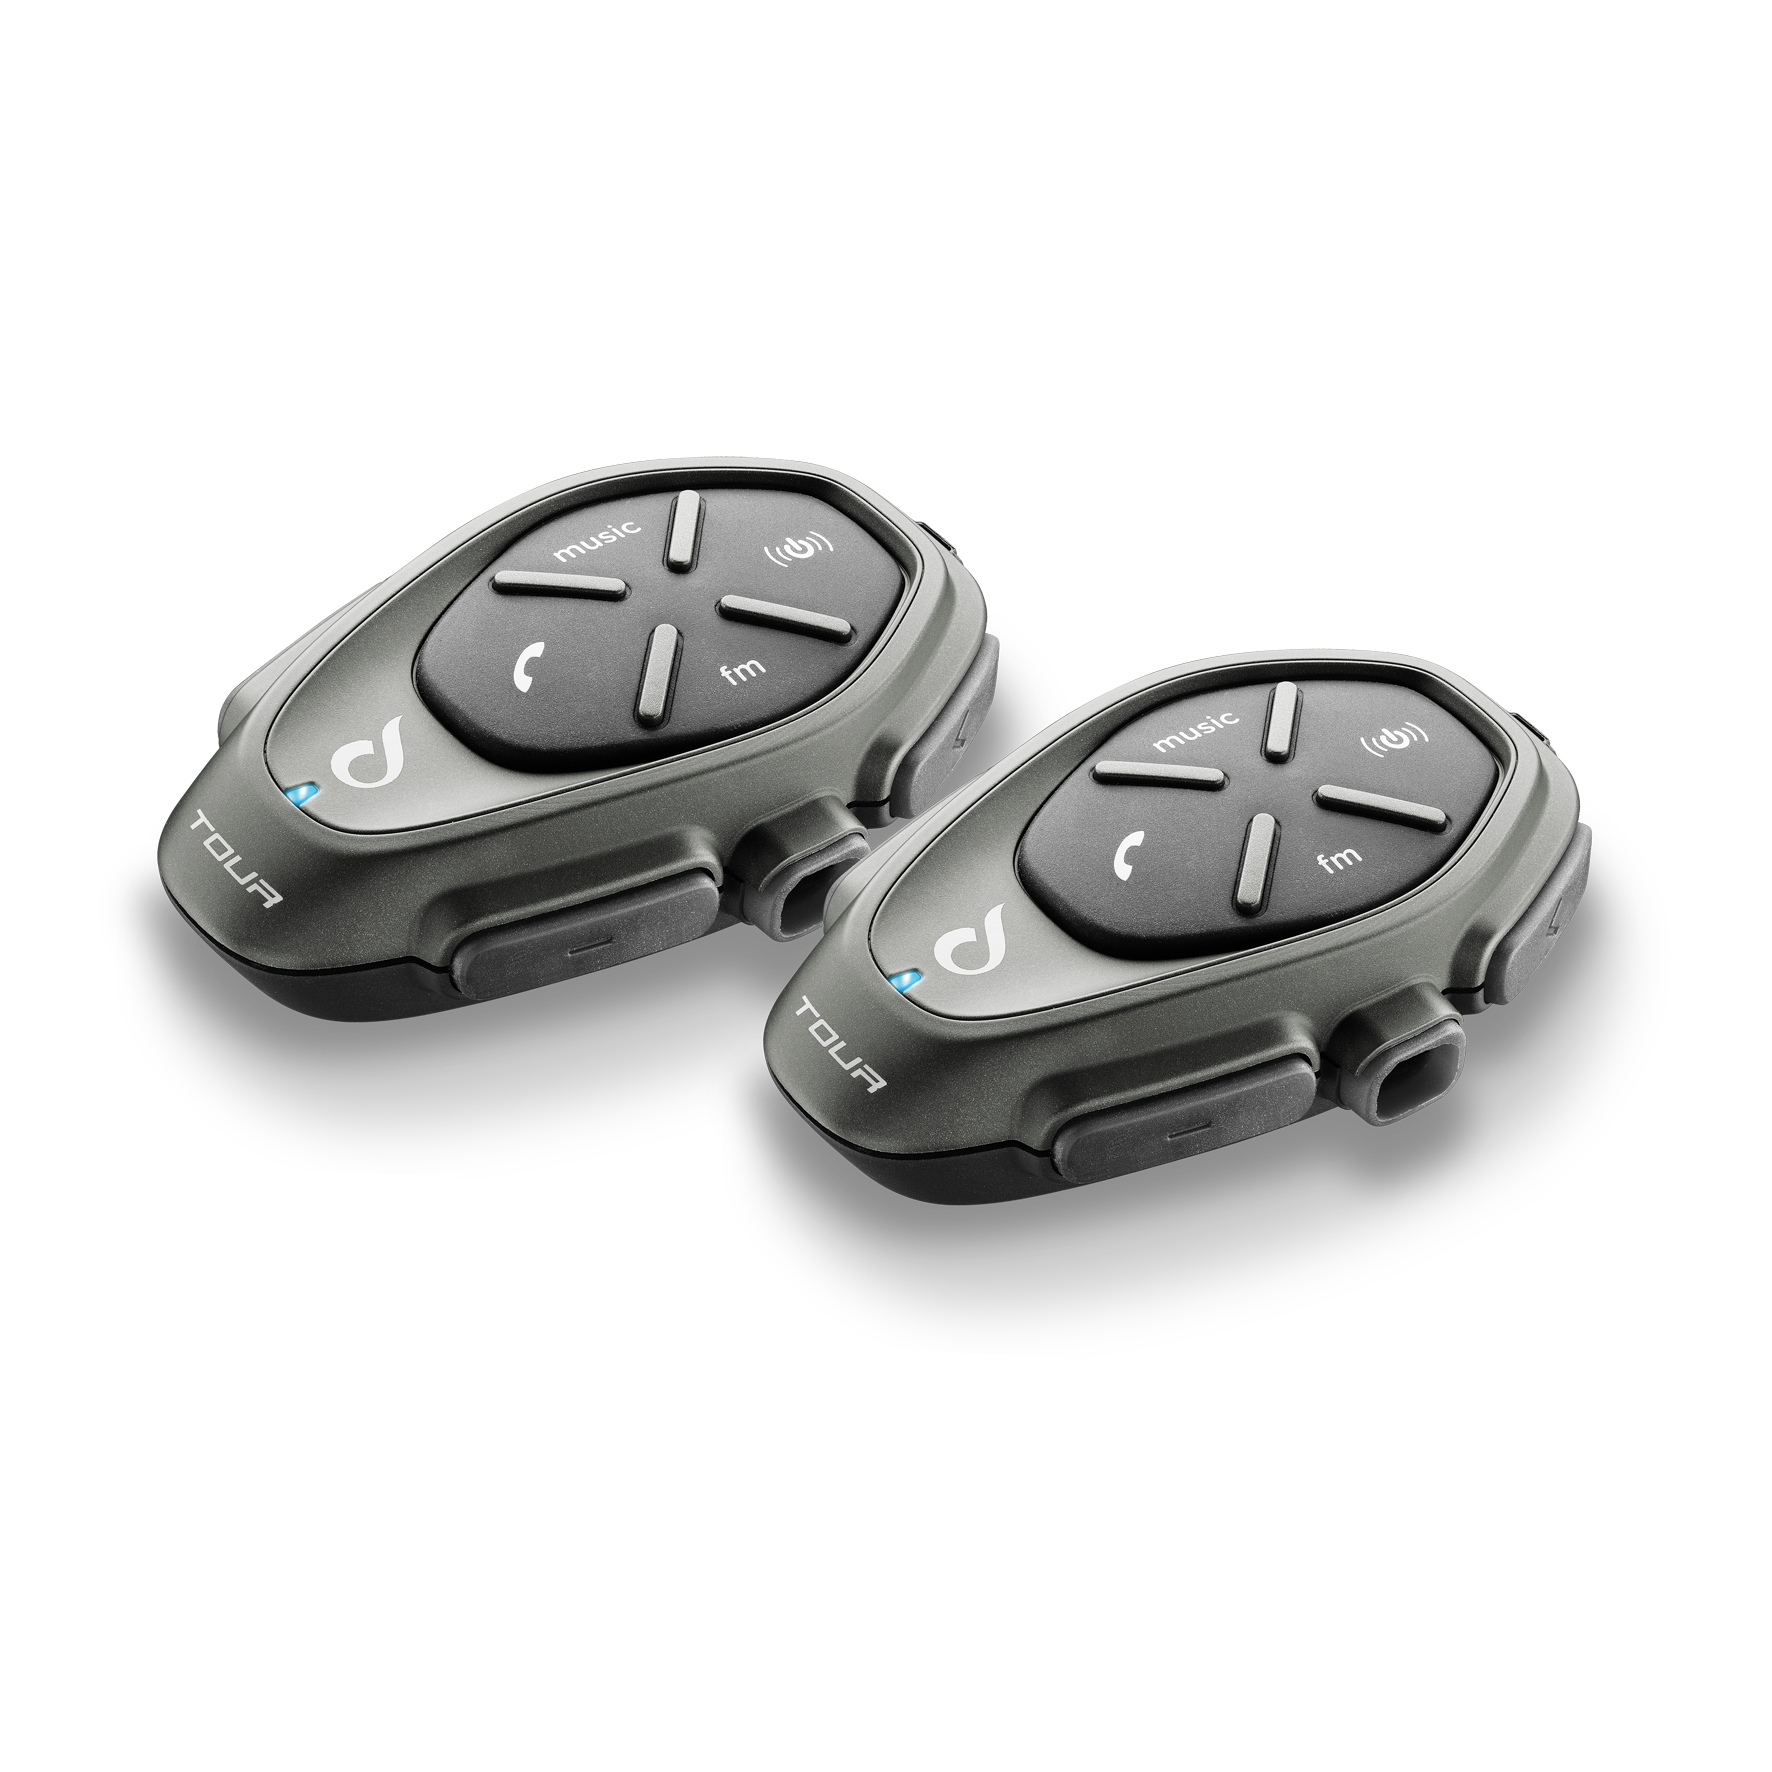 Interphone Interfono Cellular Line Tour Coppia Bluetooth 3.0 Casco Moto Scooter